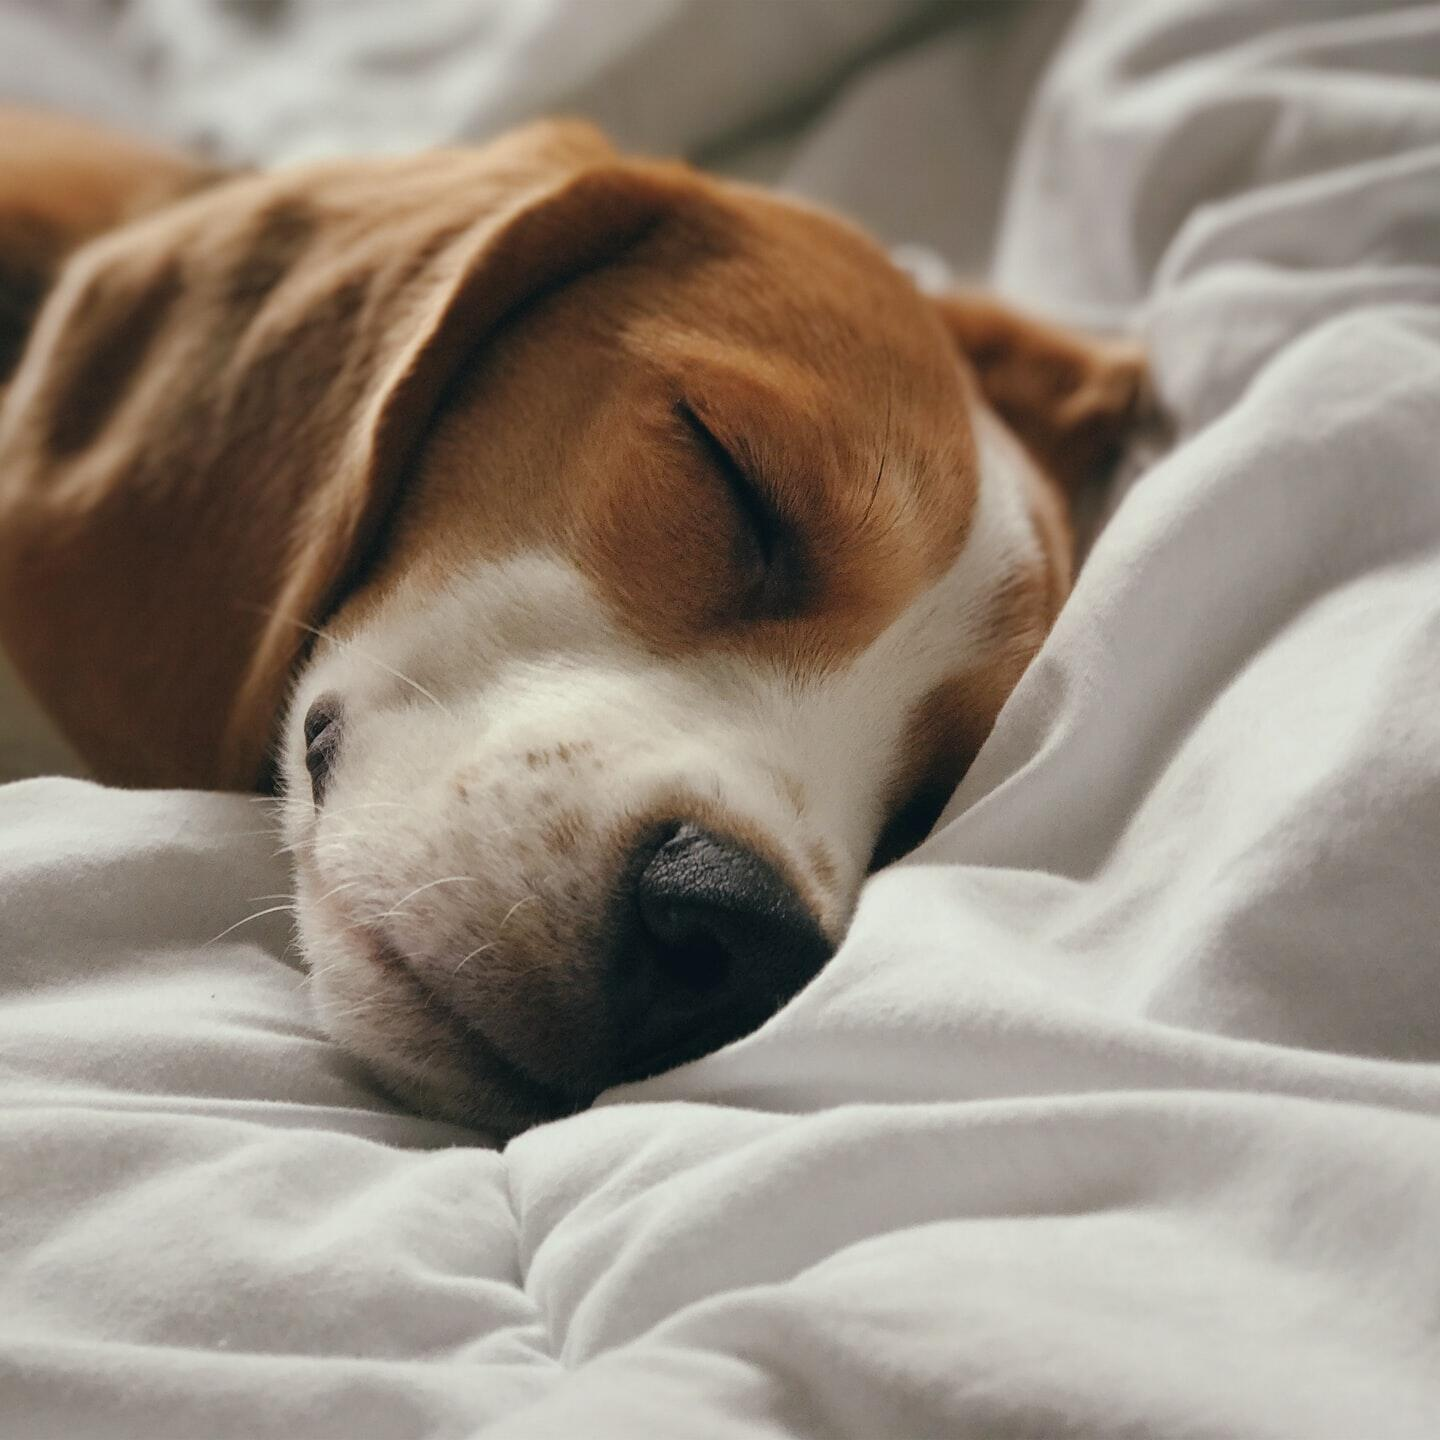 A closeup picture of a dog sleeping on a bed